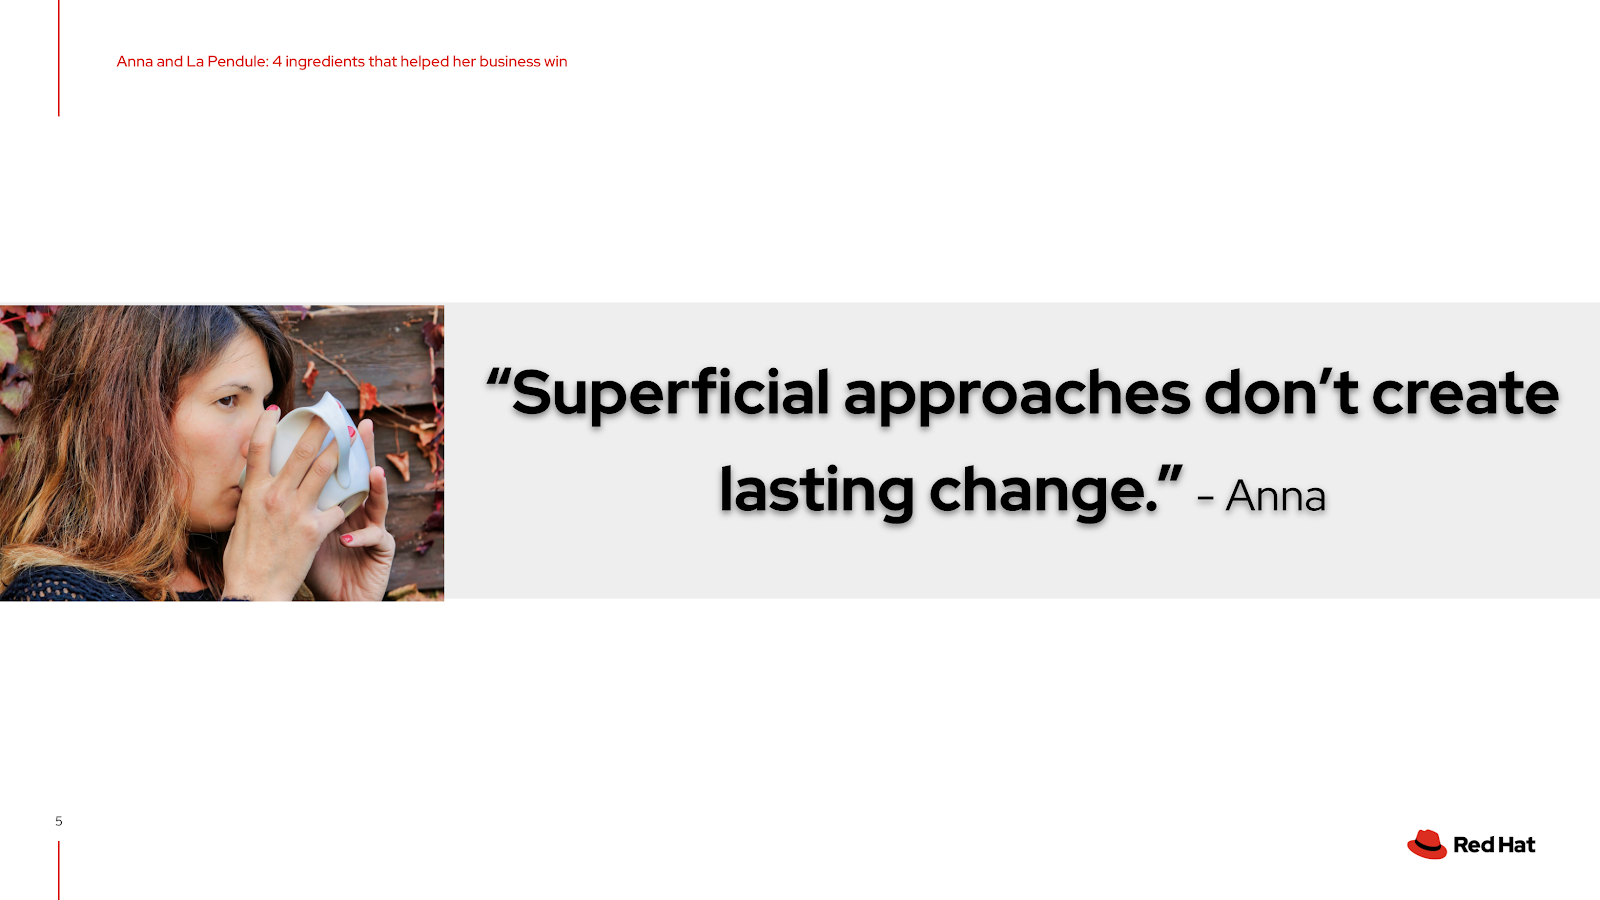 Superficial approaches don't create lasting change.